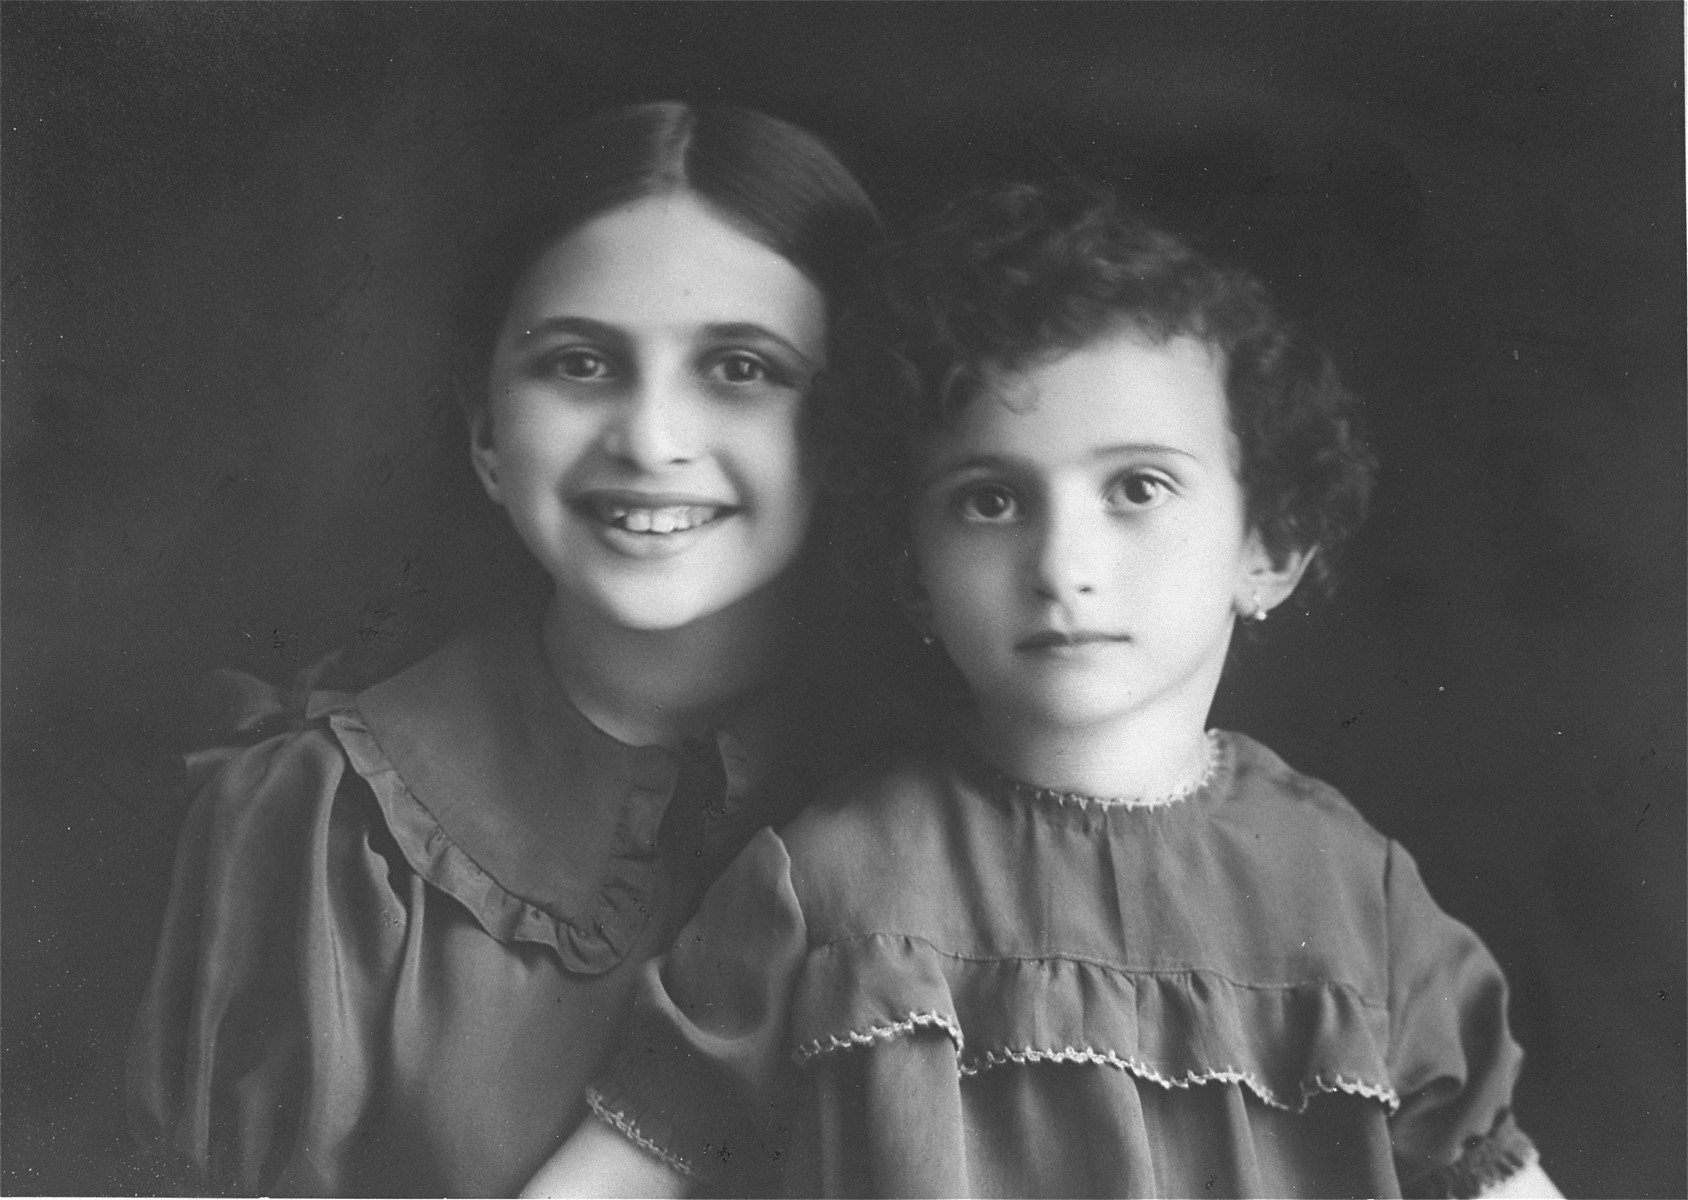 """Portrait of Fella and Rita Pressner, at ages 8 and 4.  Morris and Sala Pressner lived in Zaleszczyki, on the Romanian border, with their two daughters, Fella, the donor and Rita.  In 1934 the family left Poland for Paris, France, where the father, Morris and his brother, Jules, represented the Pressner family business.  In June 1940 the family escaped from Paris to Marseilles.  Thanks to the help of the Pressner family in America a Cuban entry visa was secured in October 1941.  The family that consisted of 9 members left for Havana, Cuba from Lisbon on the Portuguese ship """" Serpa Pinto"""".  In April 1944 Fella and her family emigrated to the U.S."""